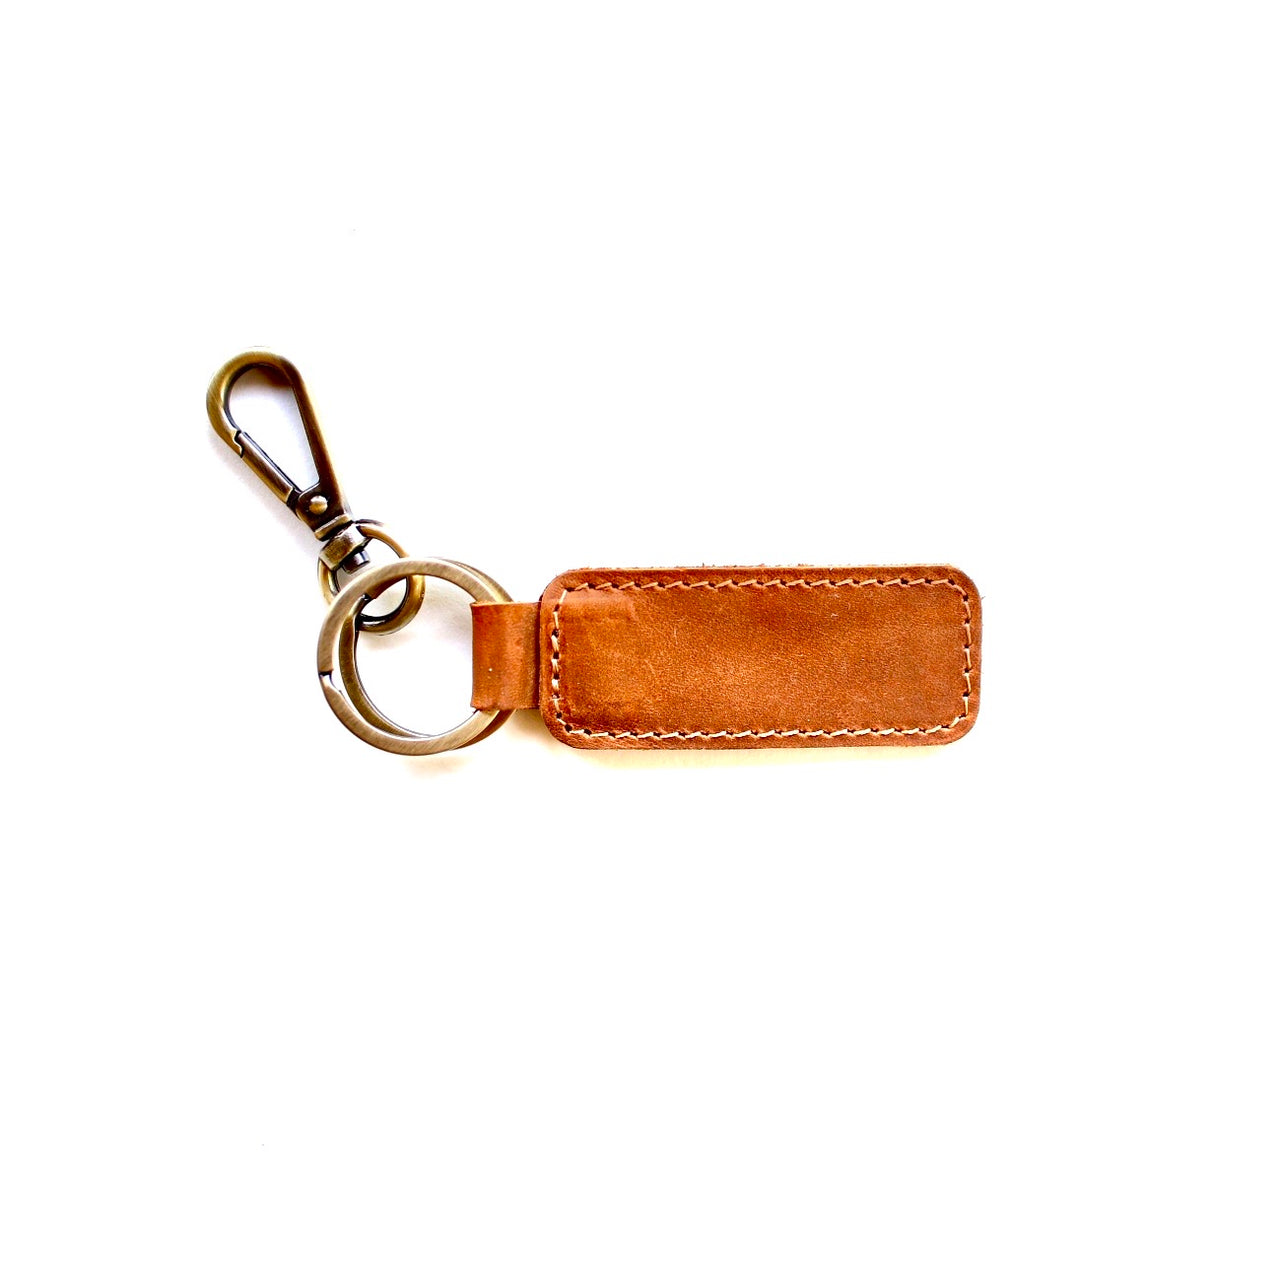 The Courier Keychain